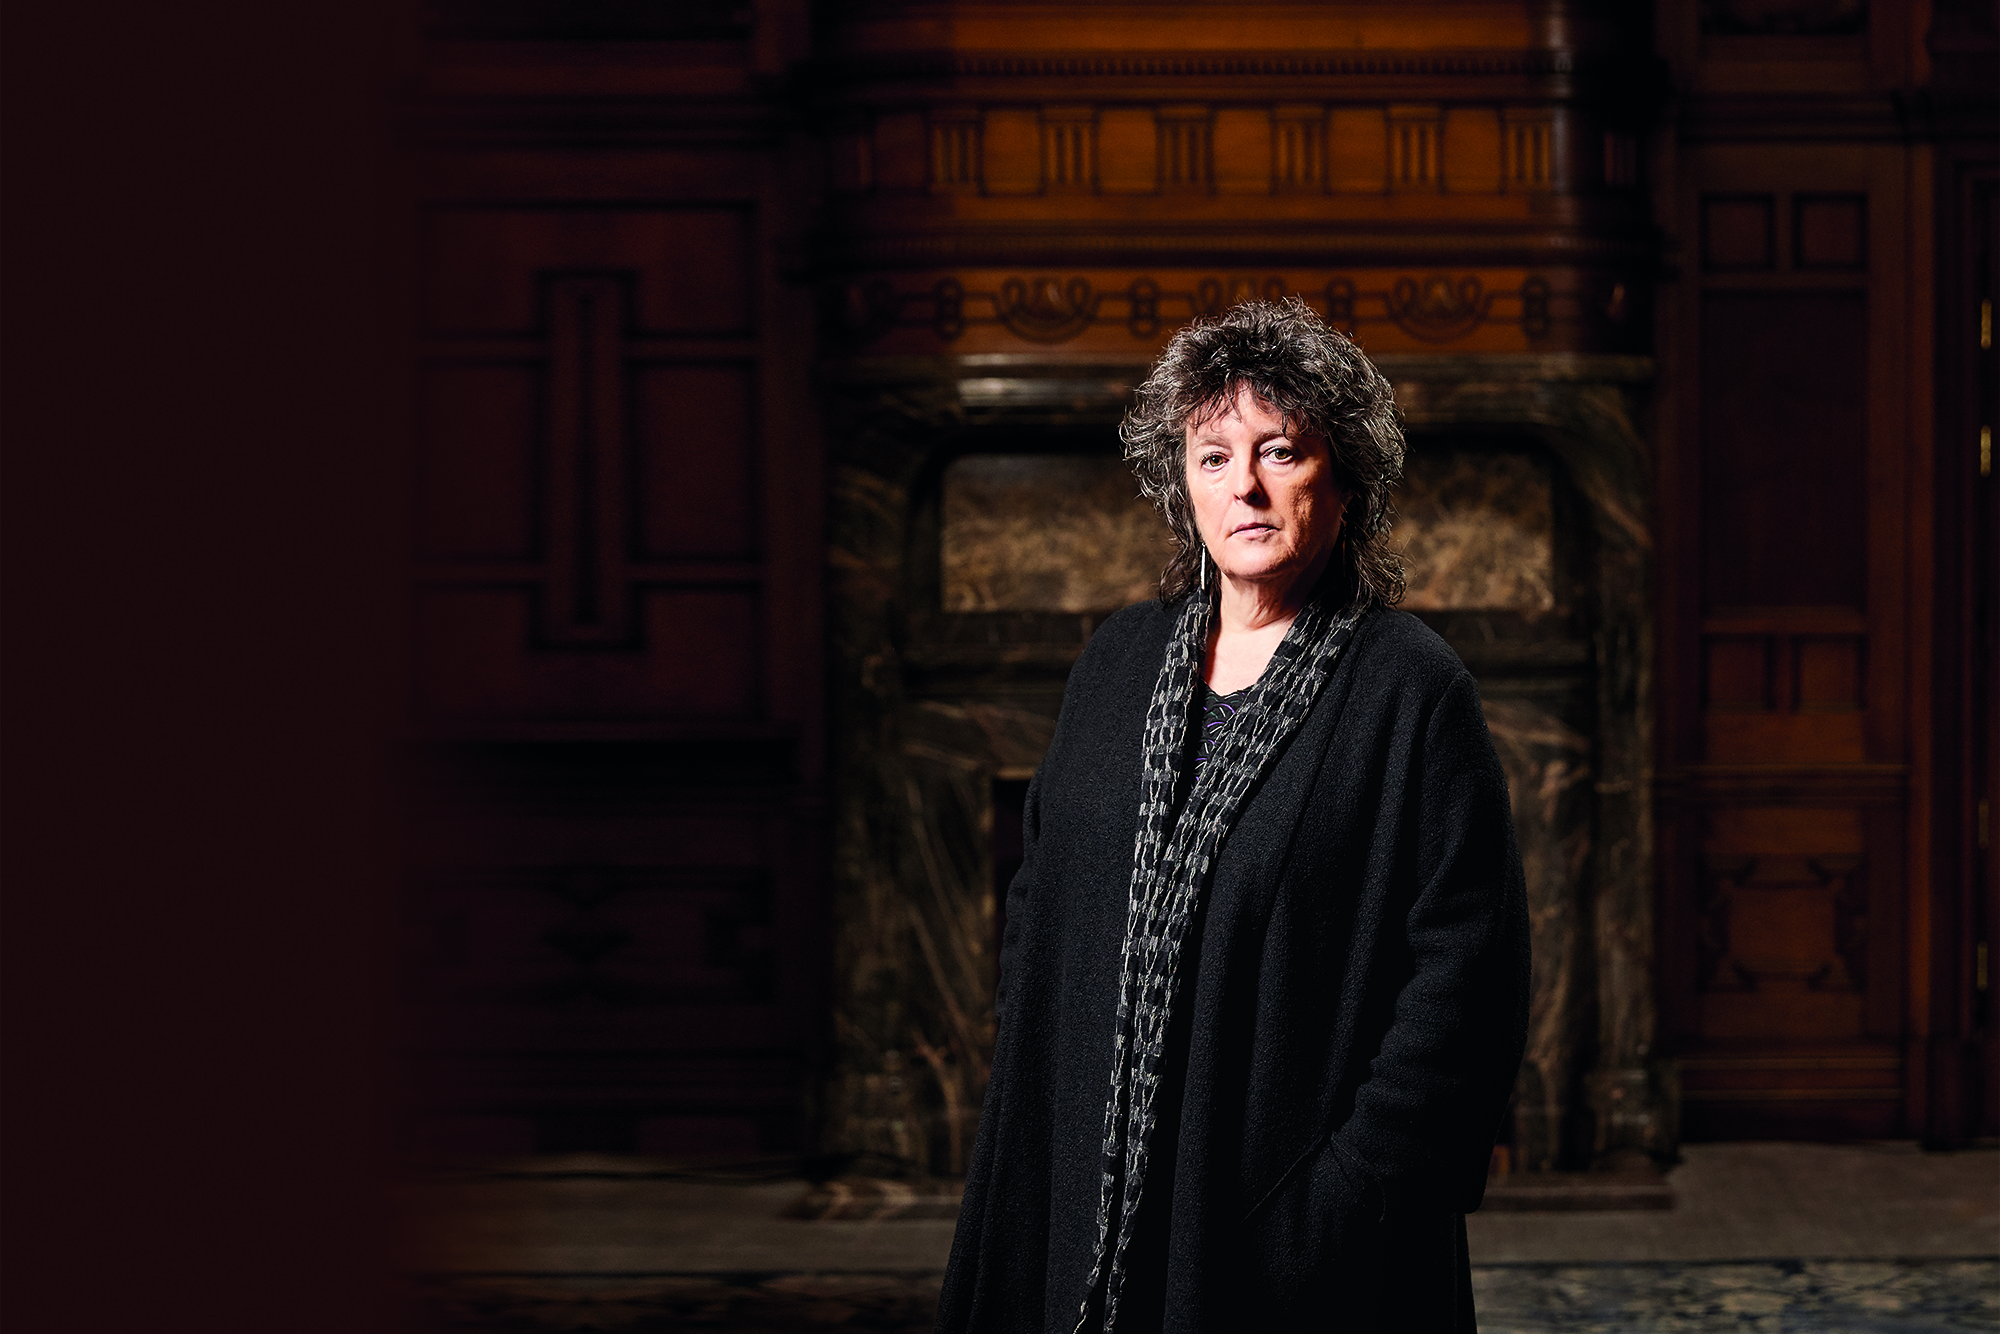 Professor Carol Ann Duffy has spent ten years as Poet Laureate, and over 20 as the driving force behind Manchester Writing School